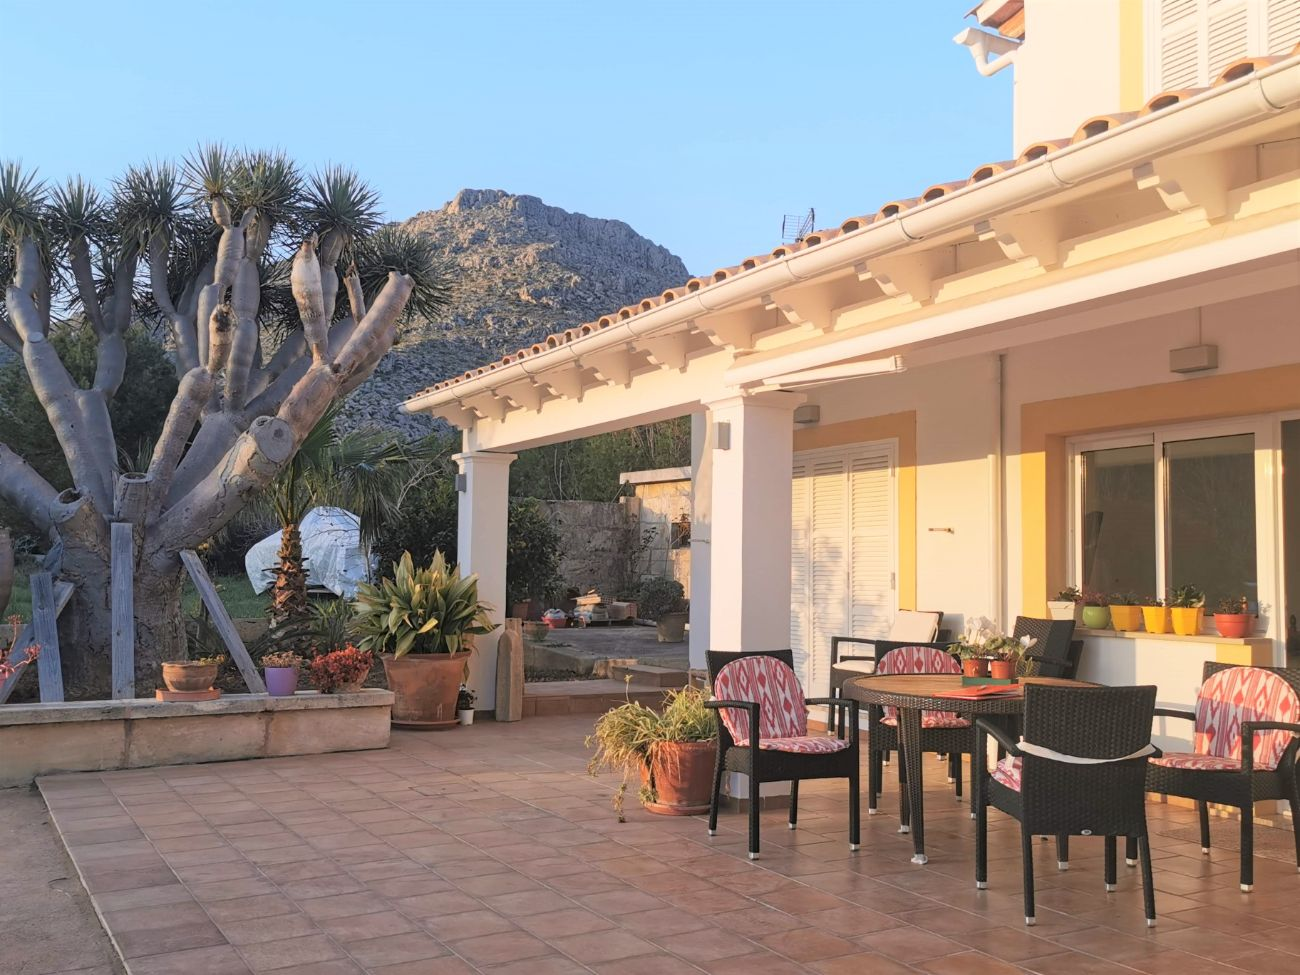 Stunning 4 bedroom modern villa for annual rental Puerto Pollensa Mallorca close to beach